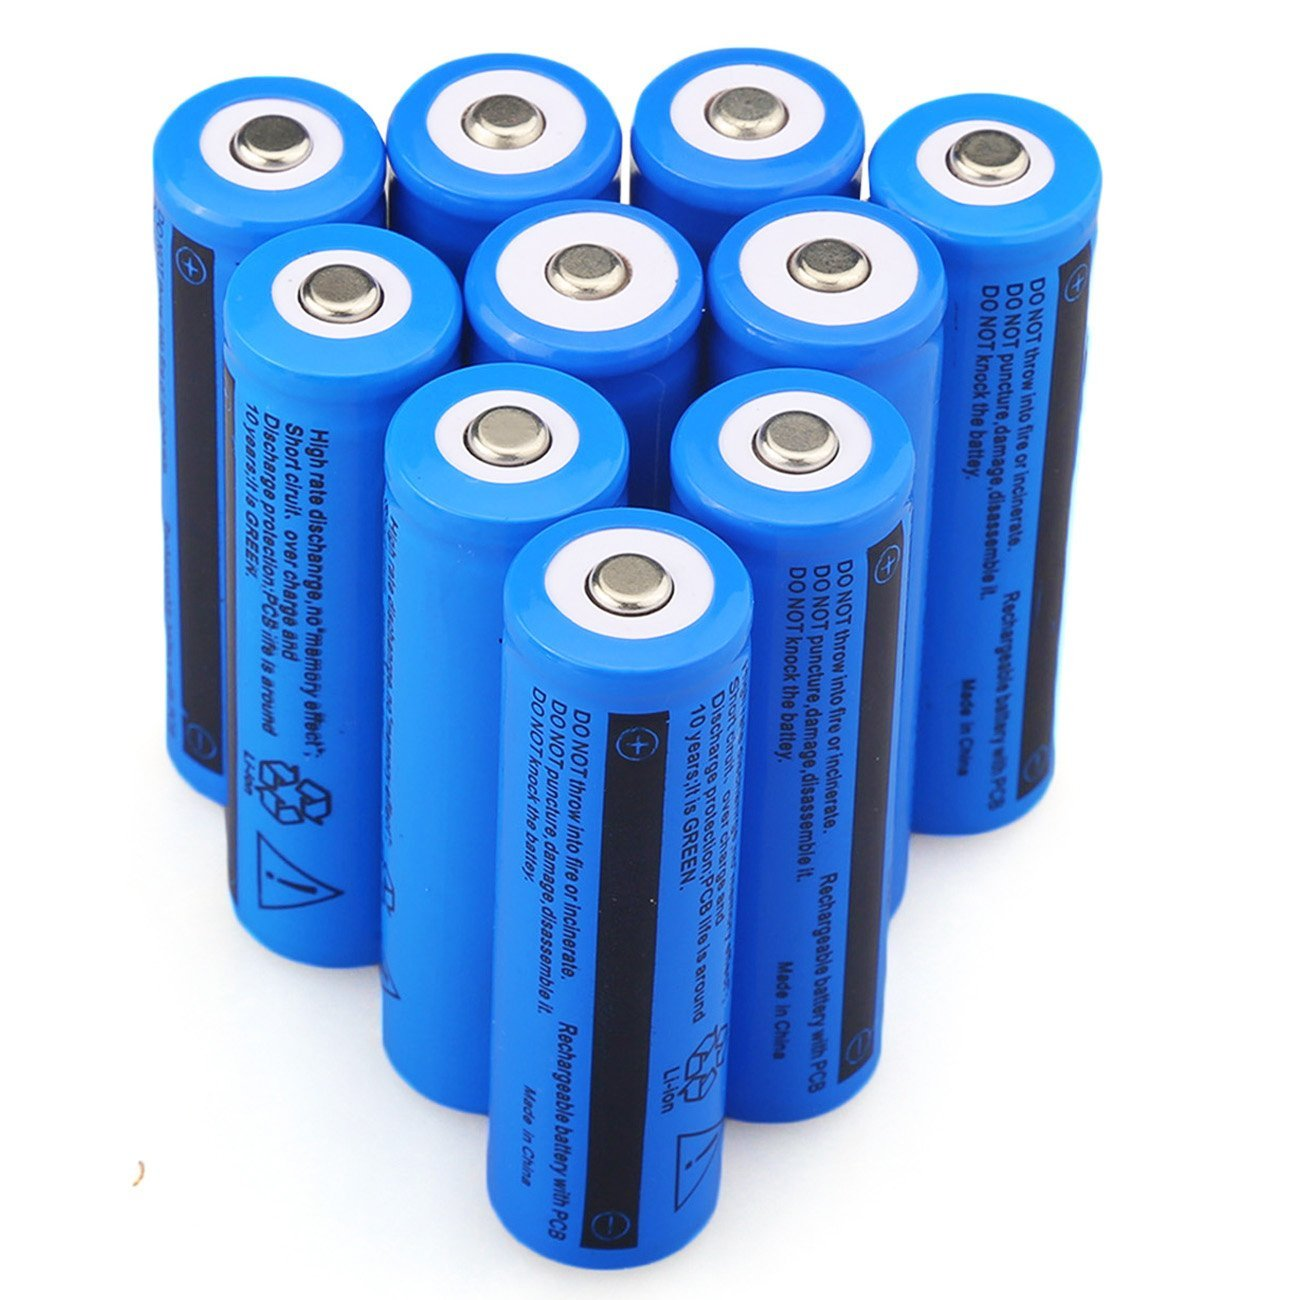 GTF 18650 3.7V <font><b>5000mAh</b></font> <font><b>Battery</b></font> Rechargeable <font><b>Batteries</b></font> for LED Flashlight